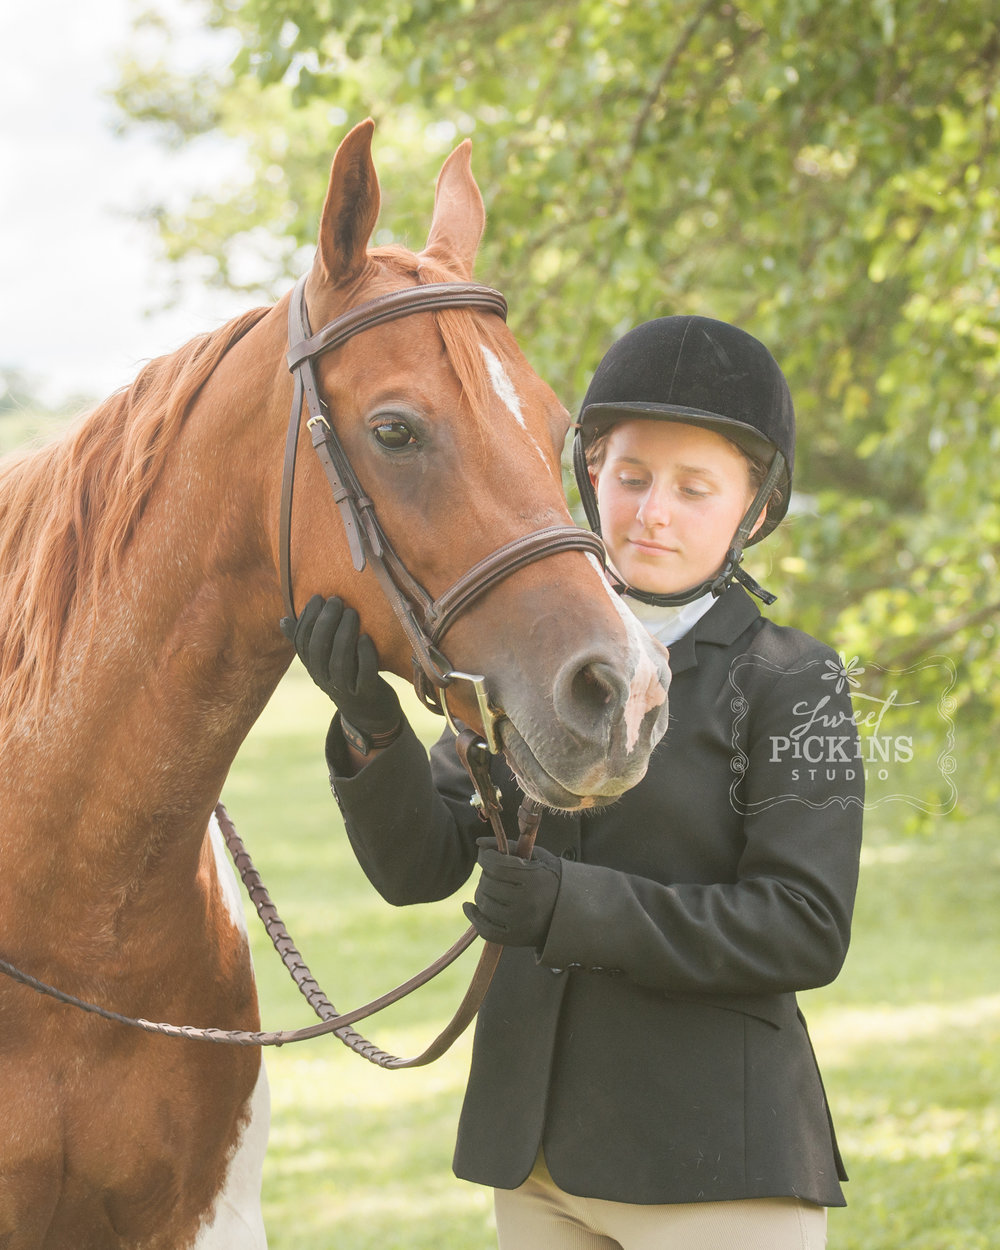 Horse Show Mini Portrait Photography Session | Sweet Pickins Studio